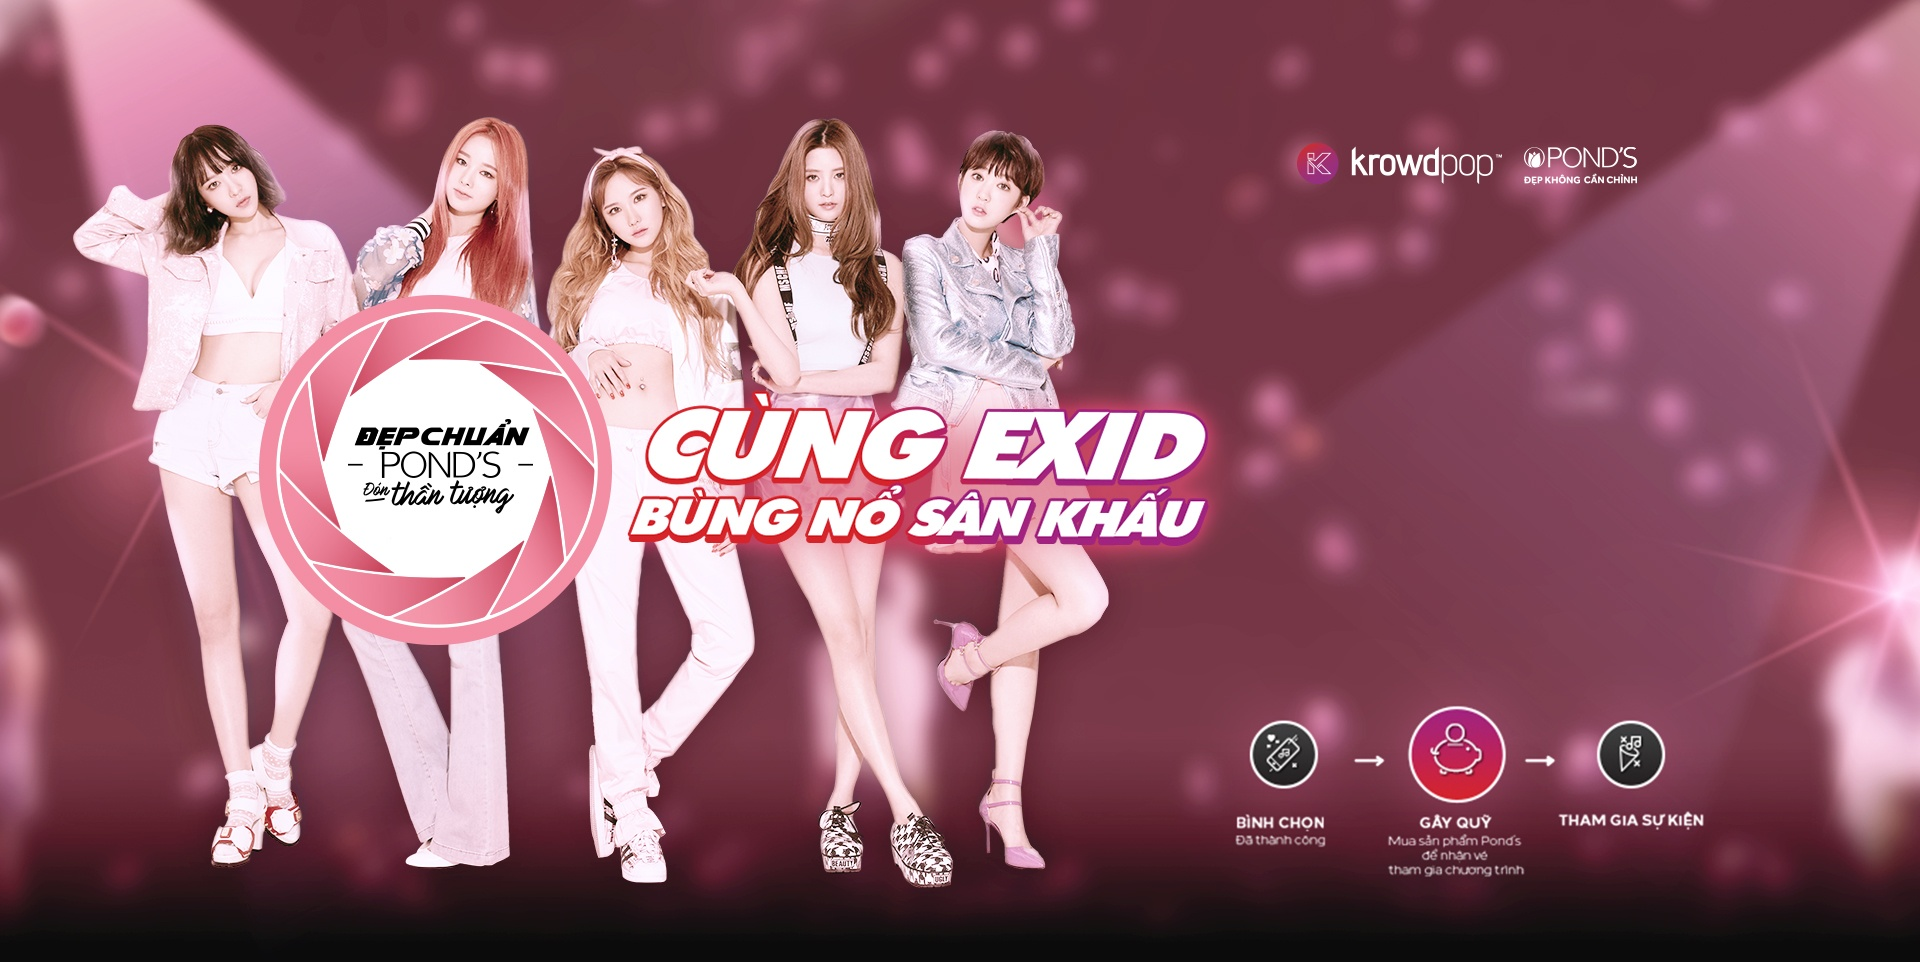 The banner being used on Krowdpop's website to market this event.